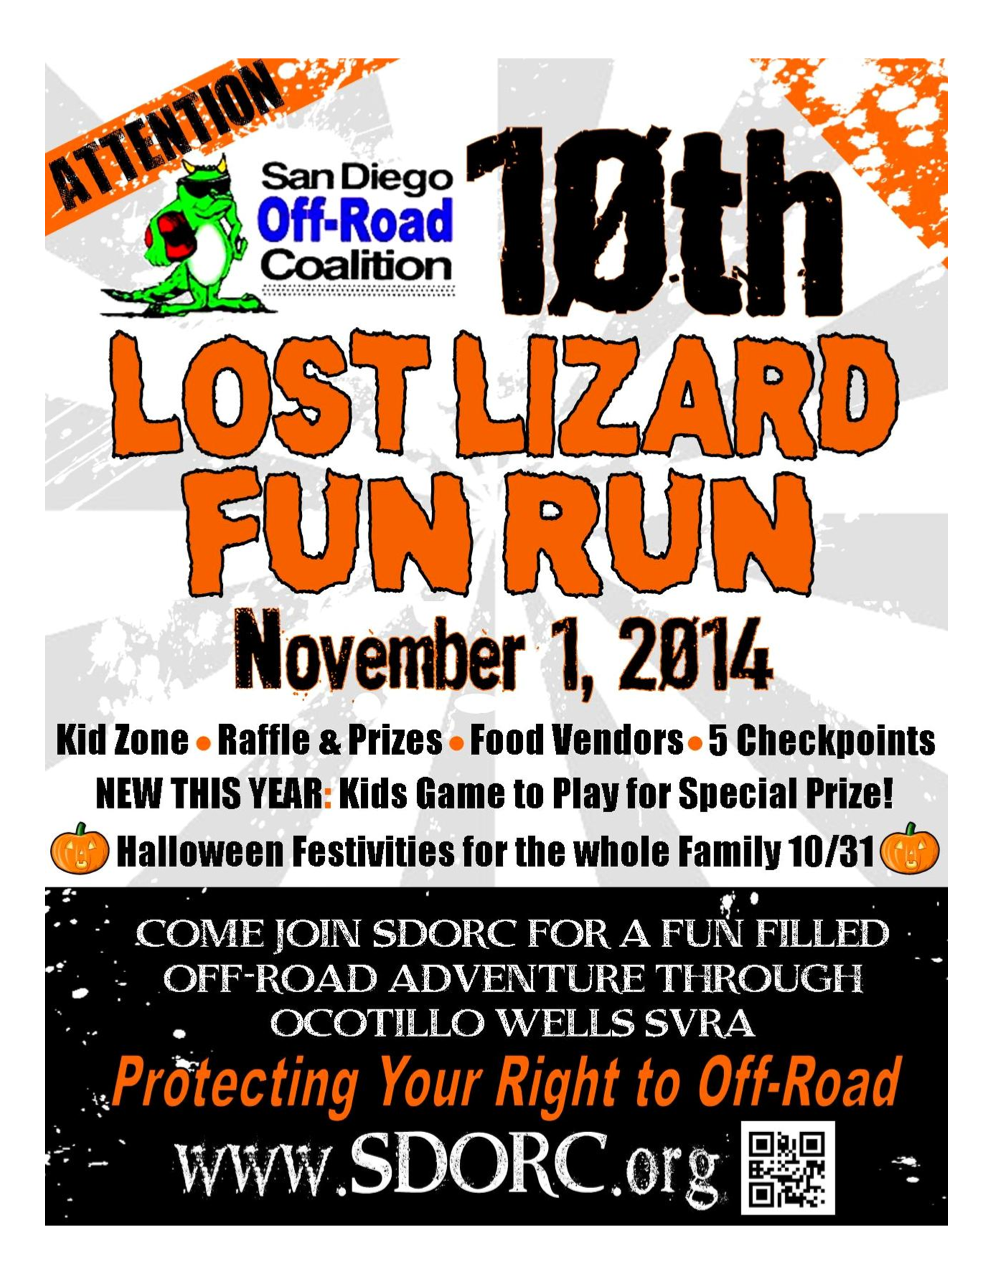 Competitive Metals will be attending the Lost Lizard Run